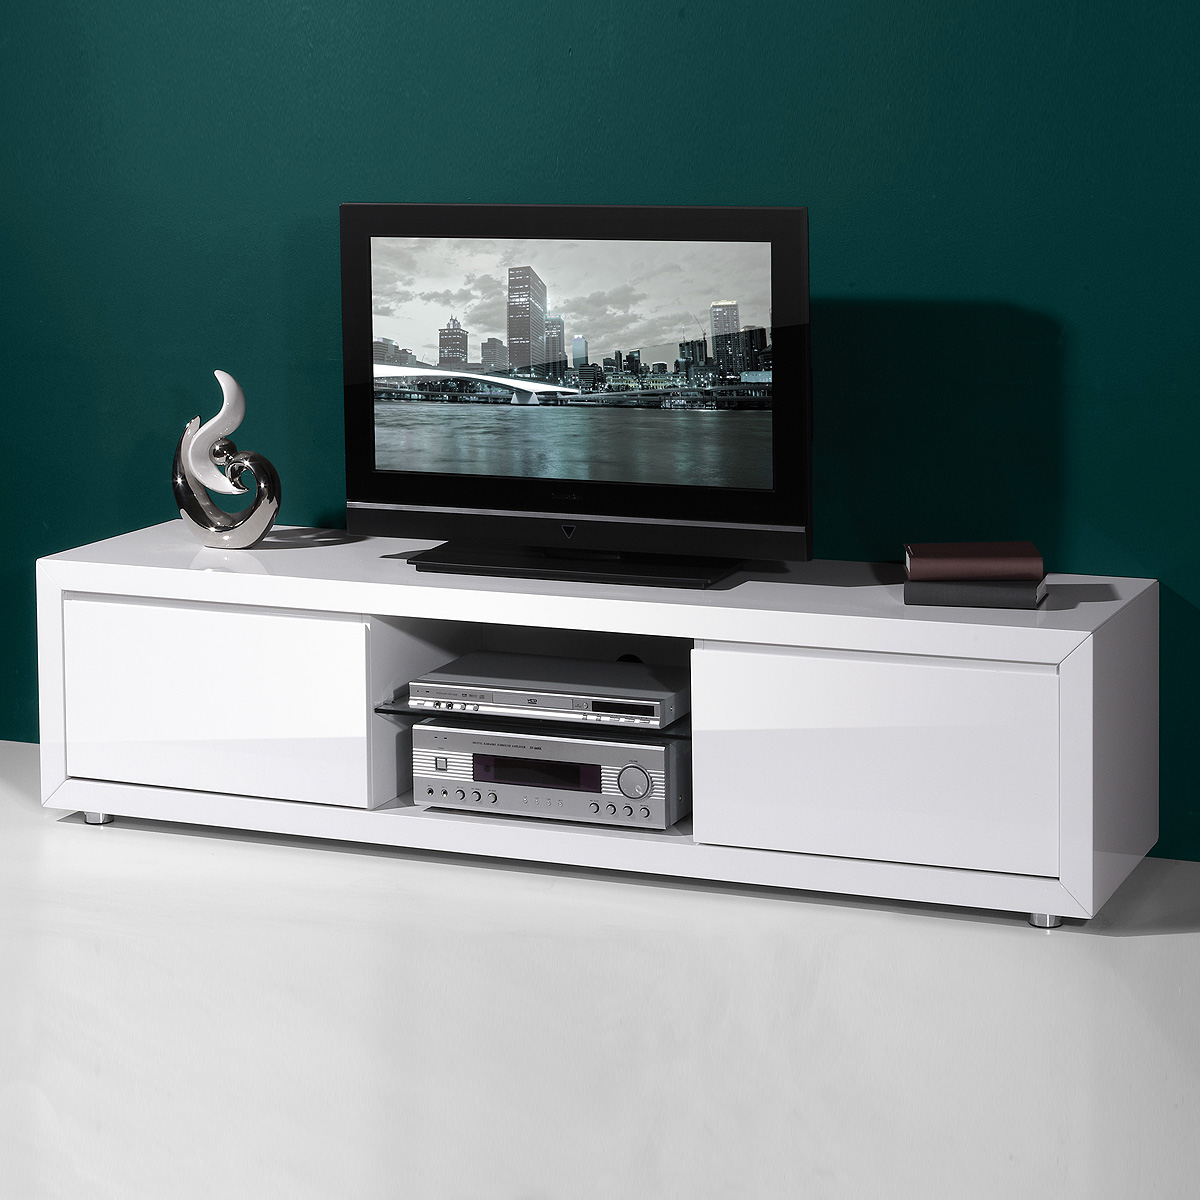 lowboard 1 fino tv board hifi m bel unterschrank wei hochglanz lack germania ebay. Black Bedroom Furniture Sets. Home Design Ideas